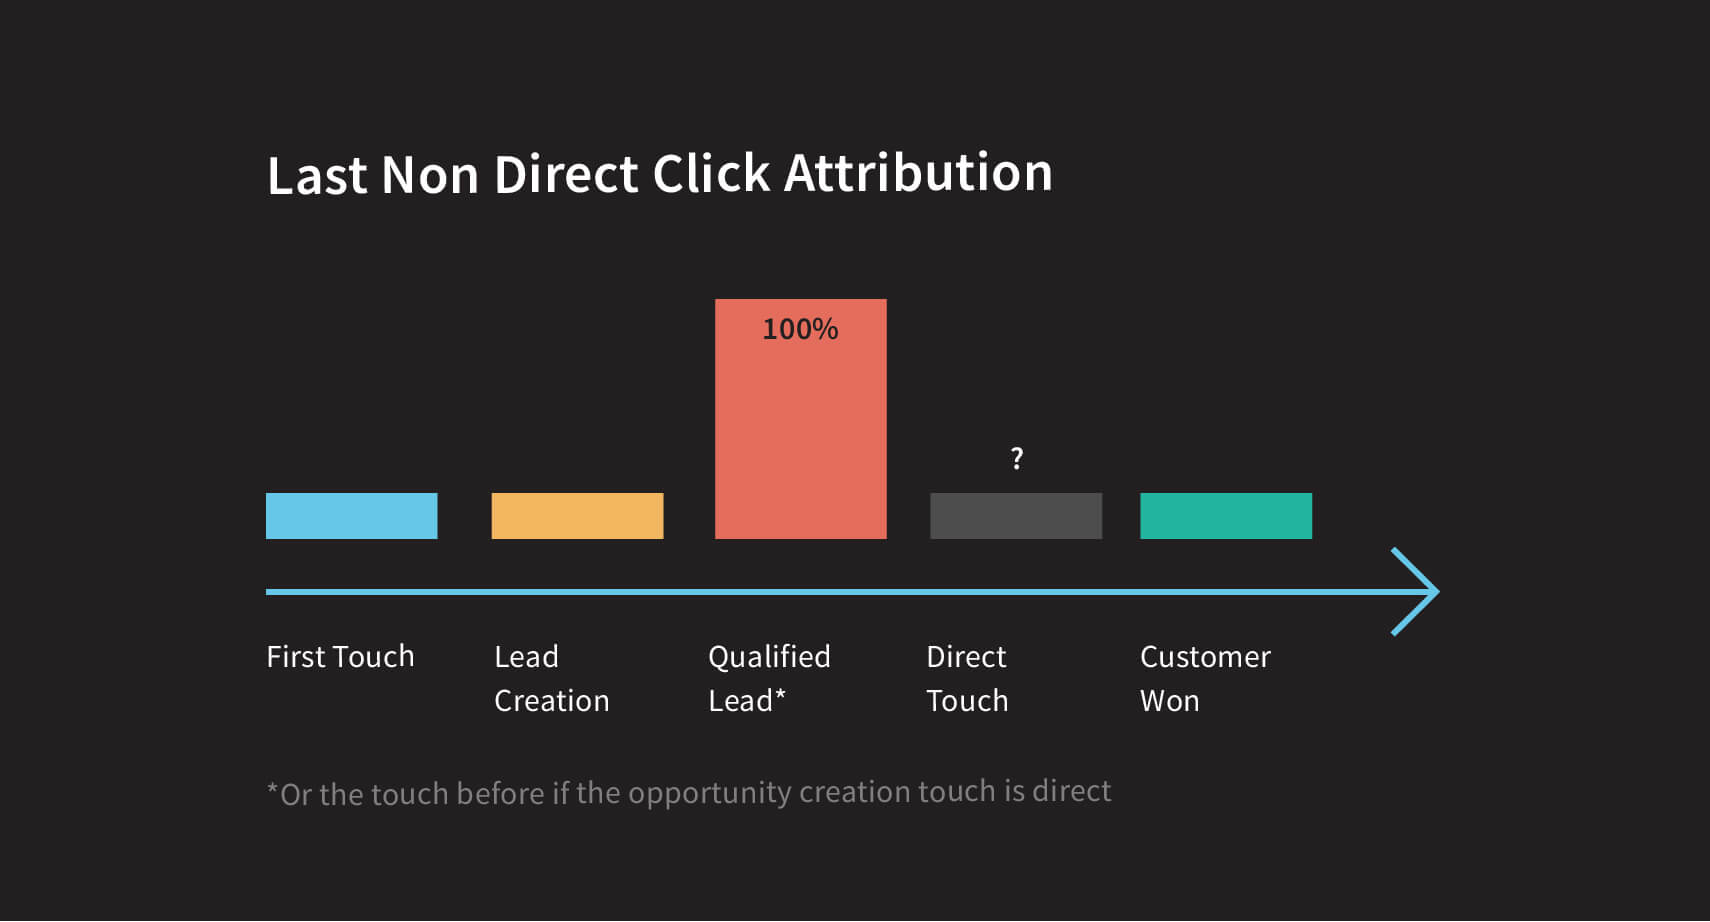 Last-non-direct-click-attribution